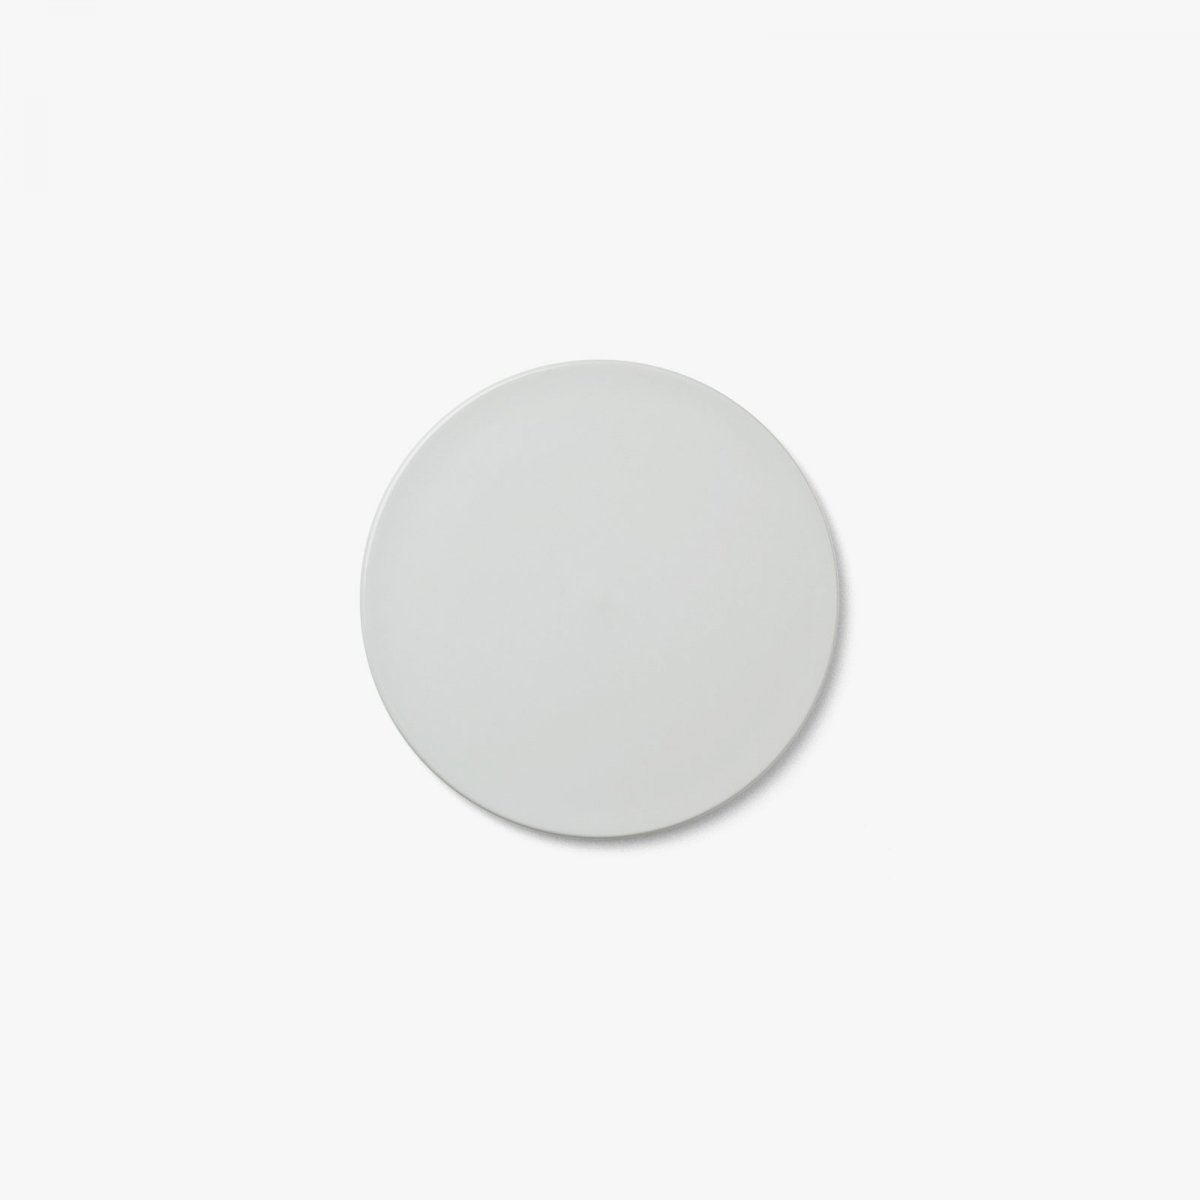 New Norm Plate/Lid, Ø 17.5 cm, white.